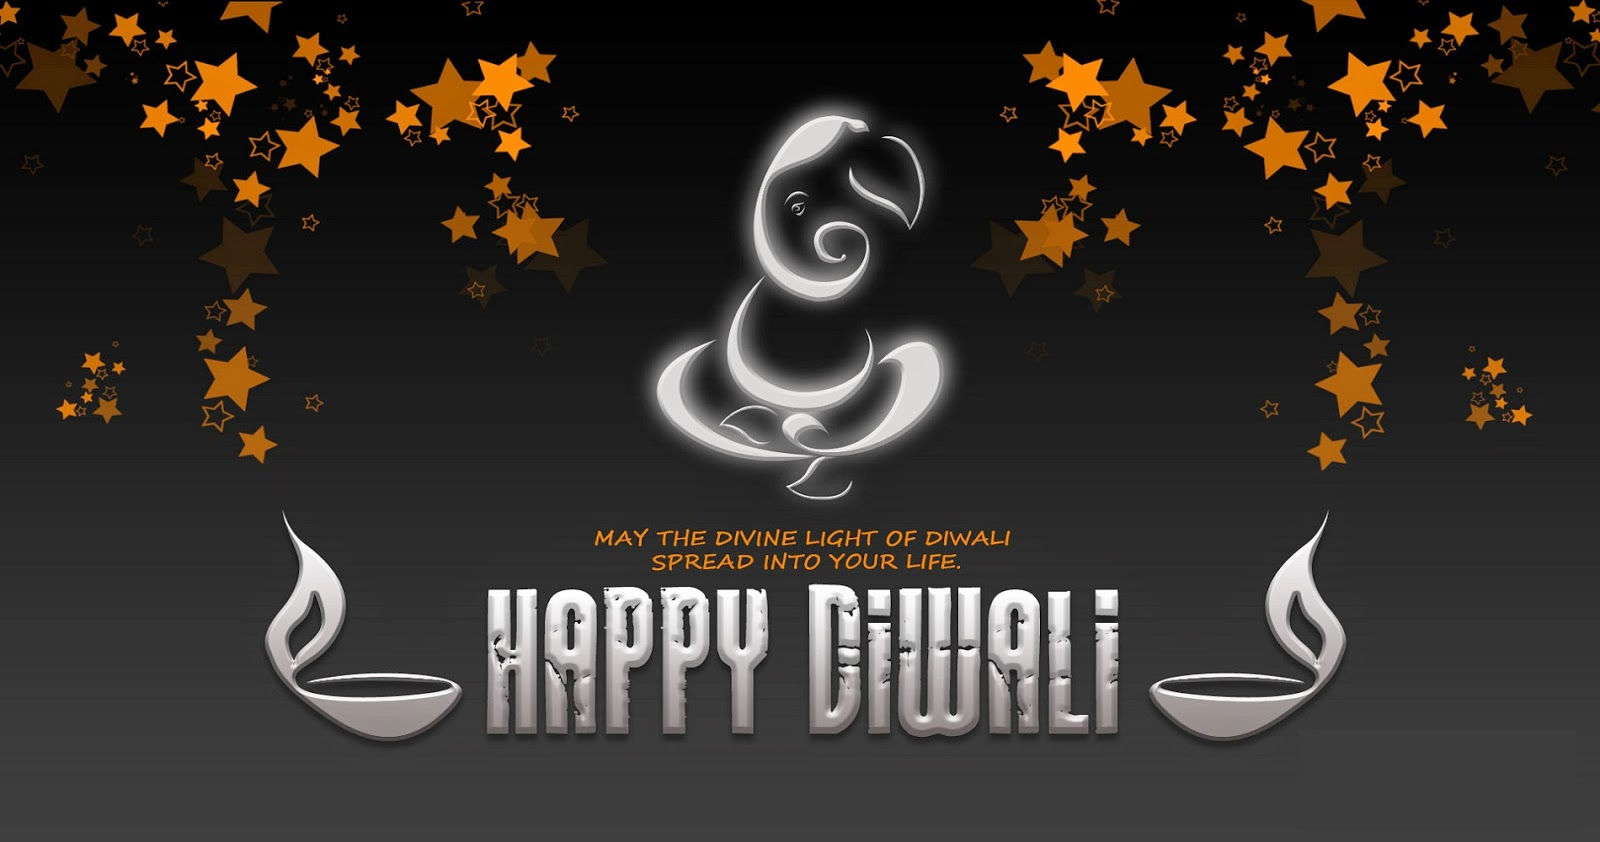 New Happy Diwali 2014 Wishing Images Greetings Cards Scarps And